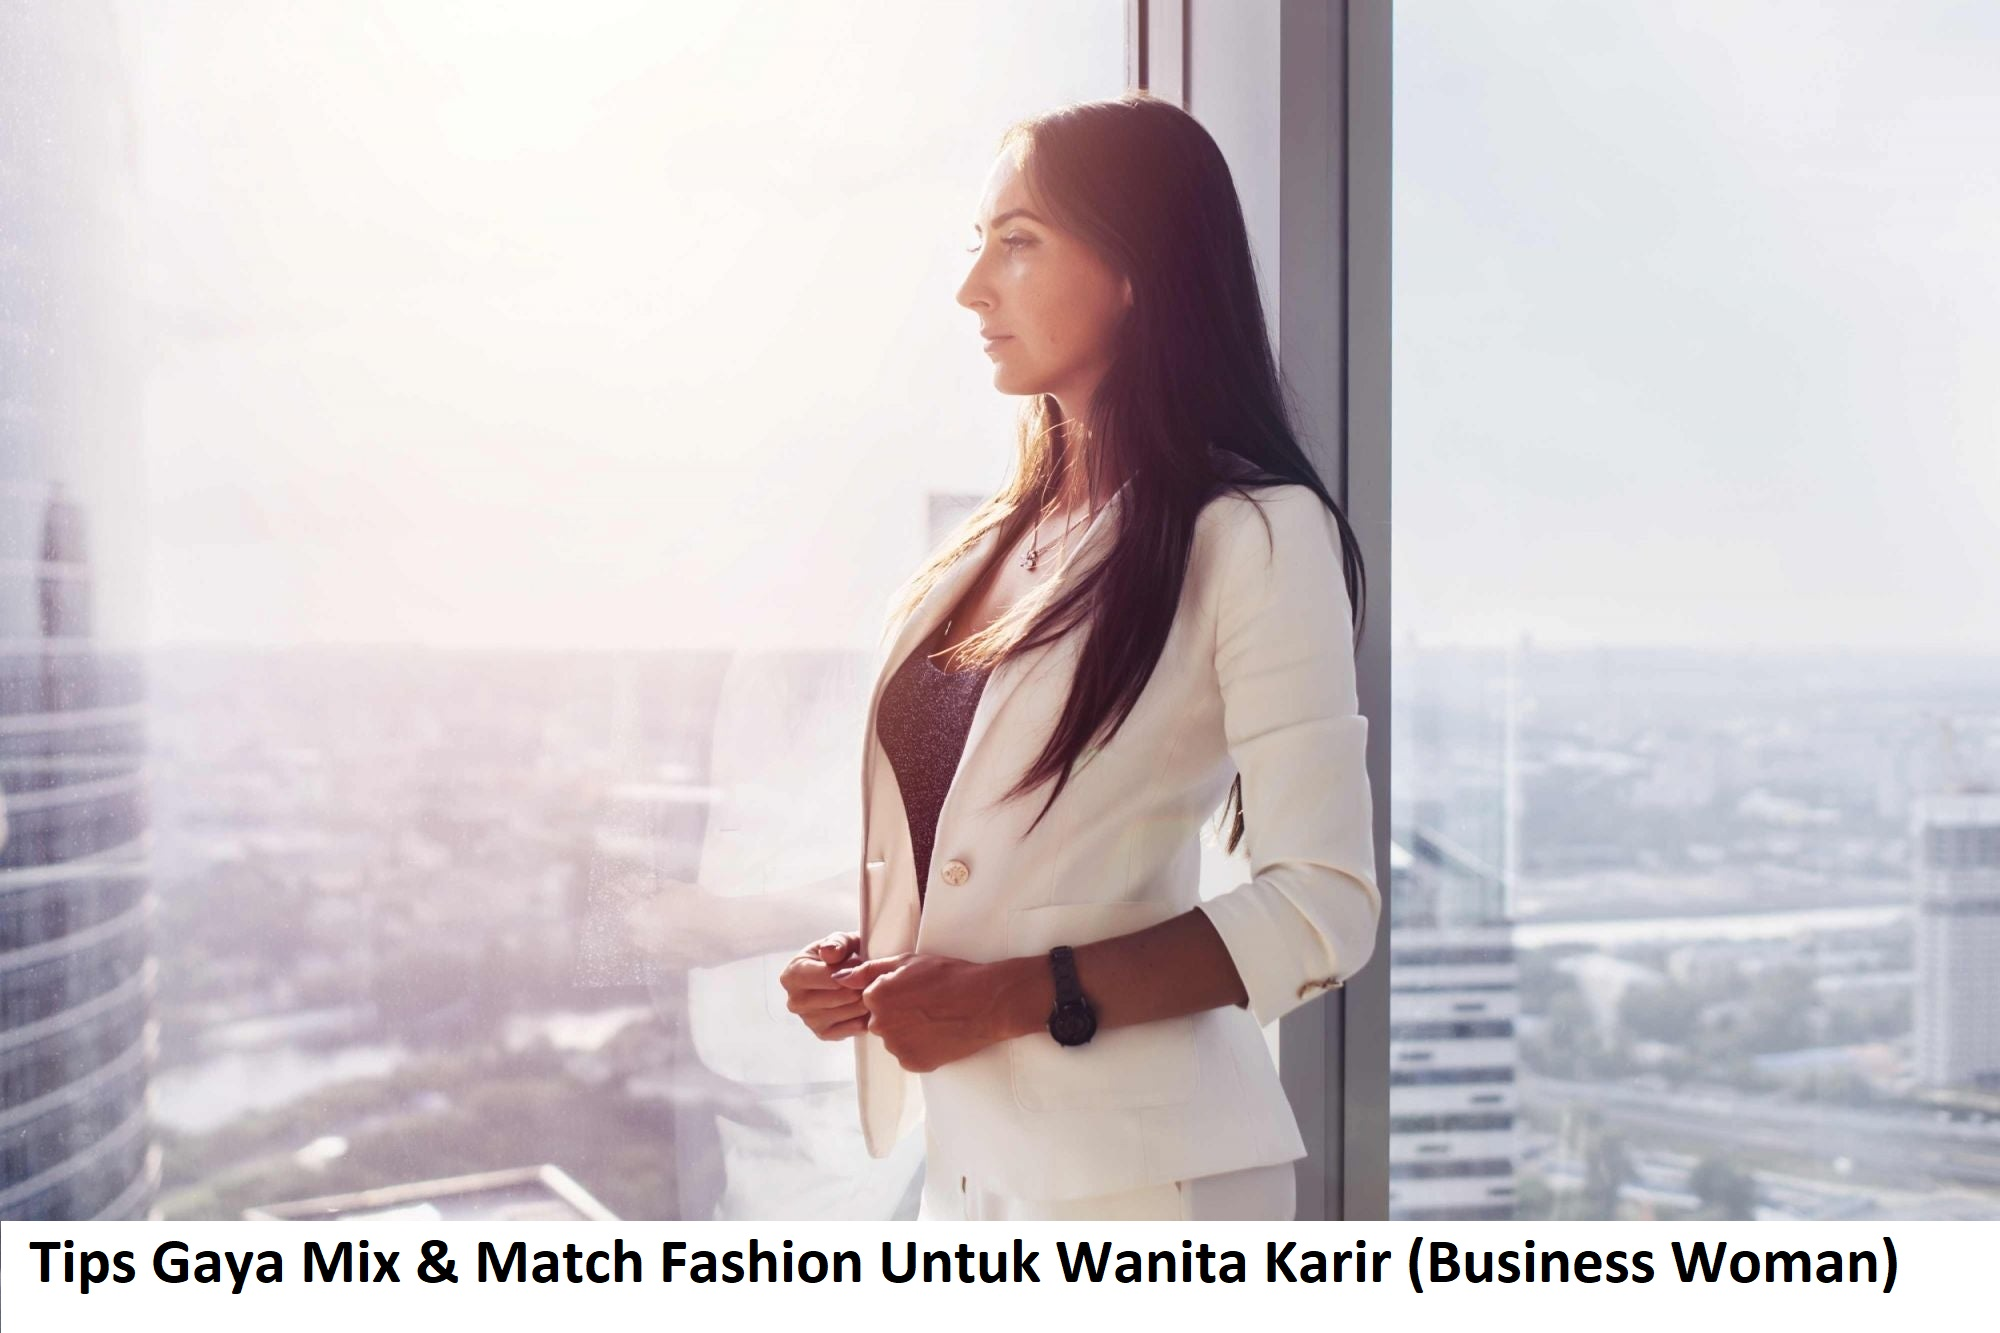 Tips Gaya Mix & Match Fashion Untuk Wanita Karir (Business Woman)